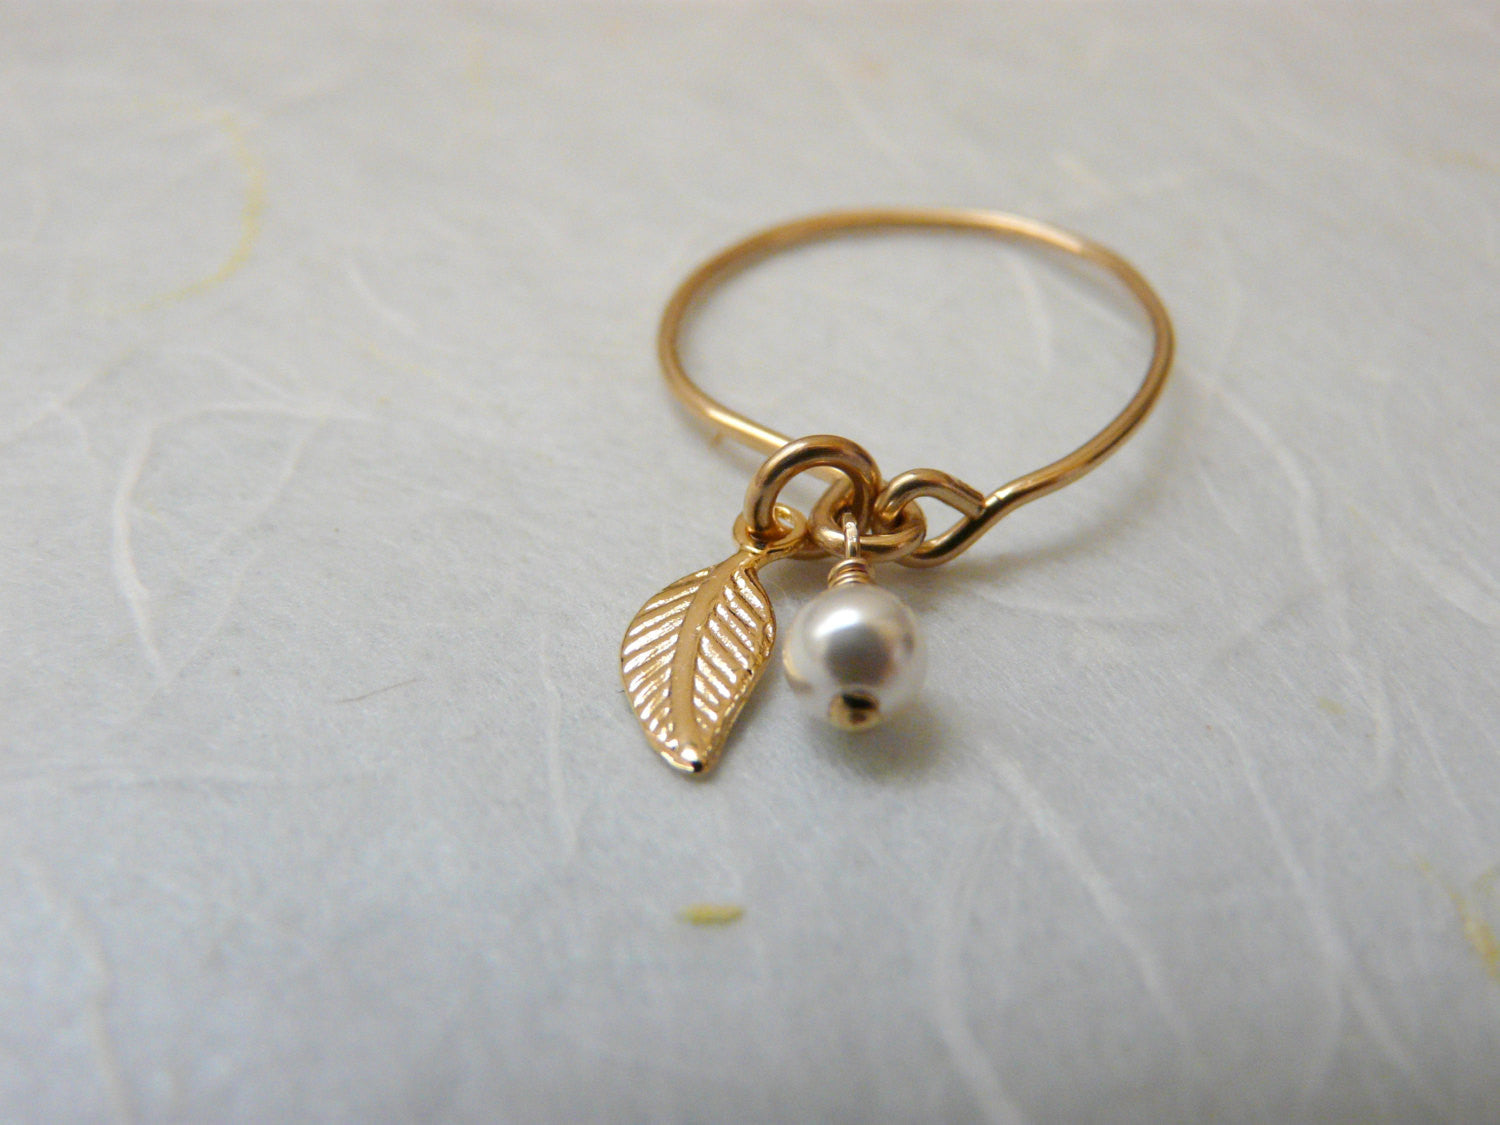 Gold filled charm ring - OpaLandJewelry